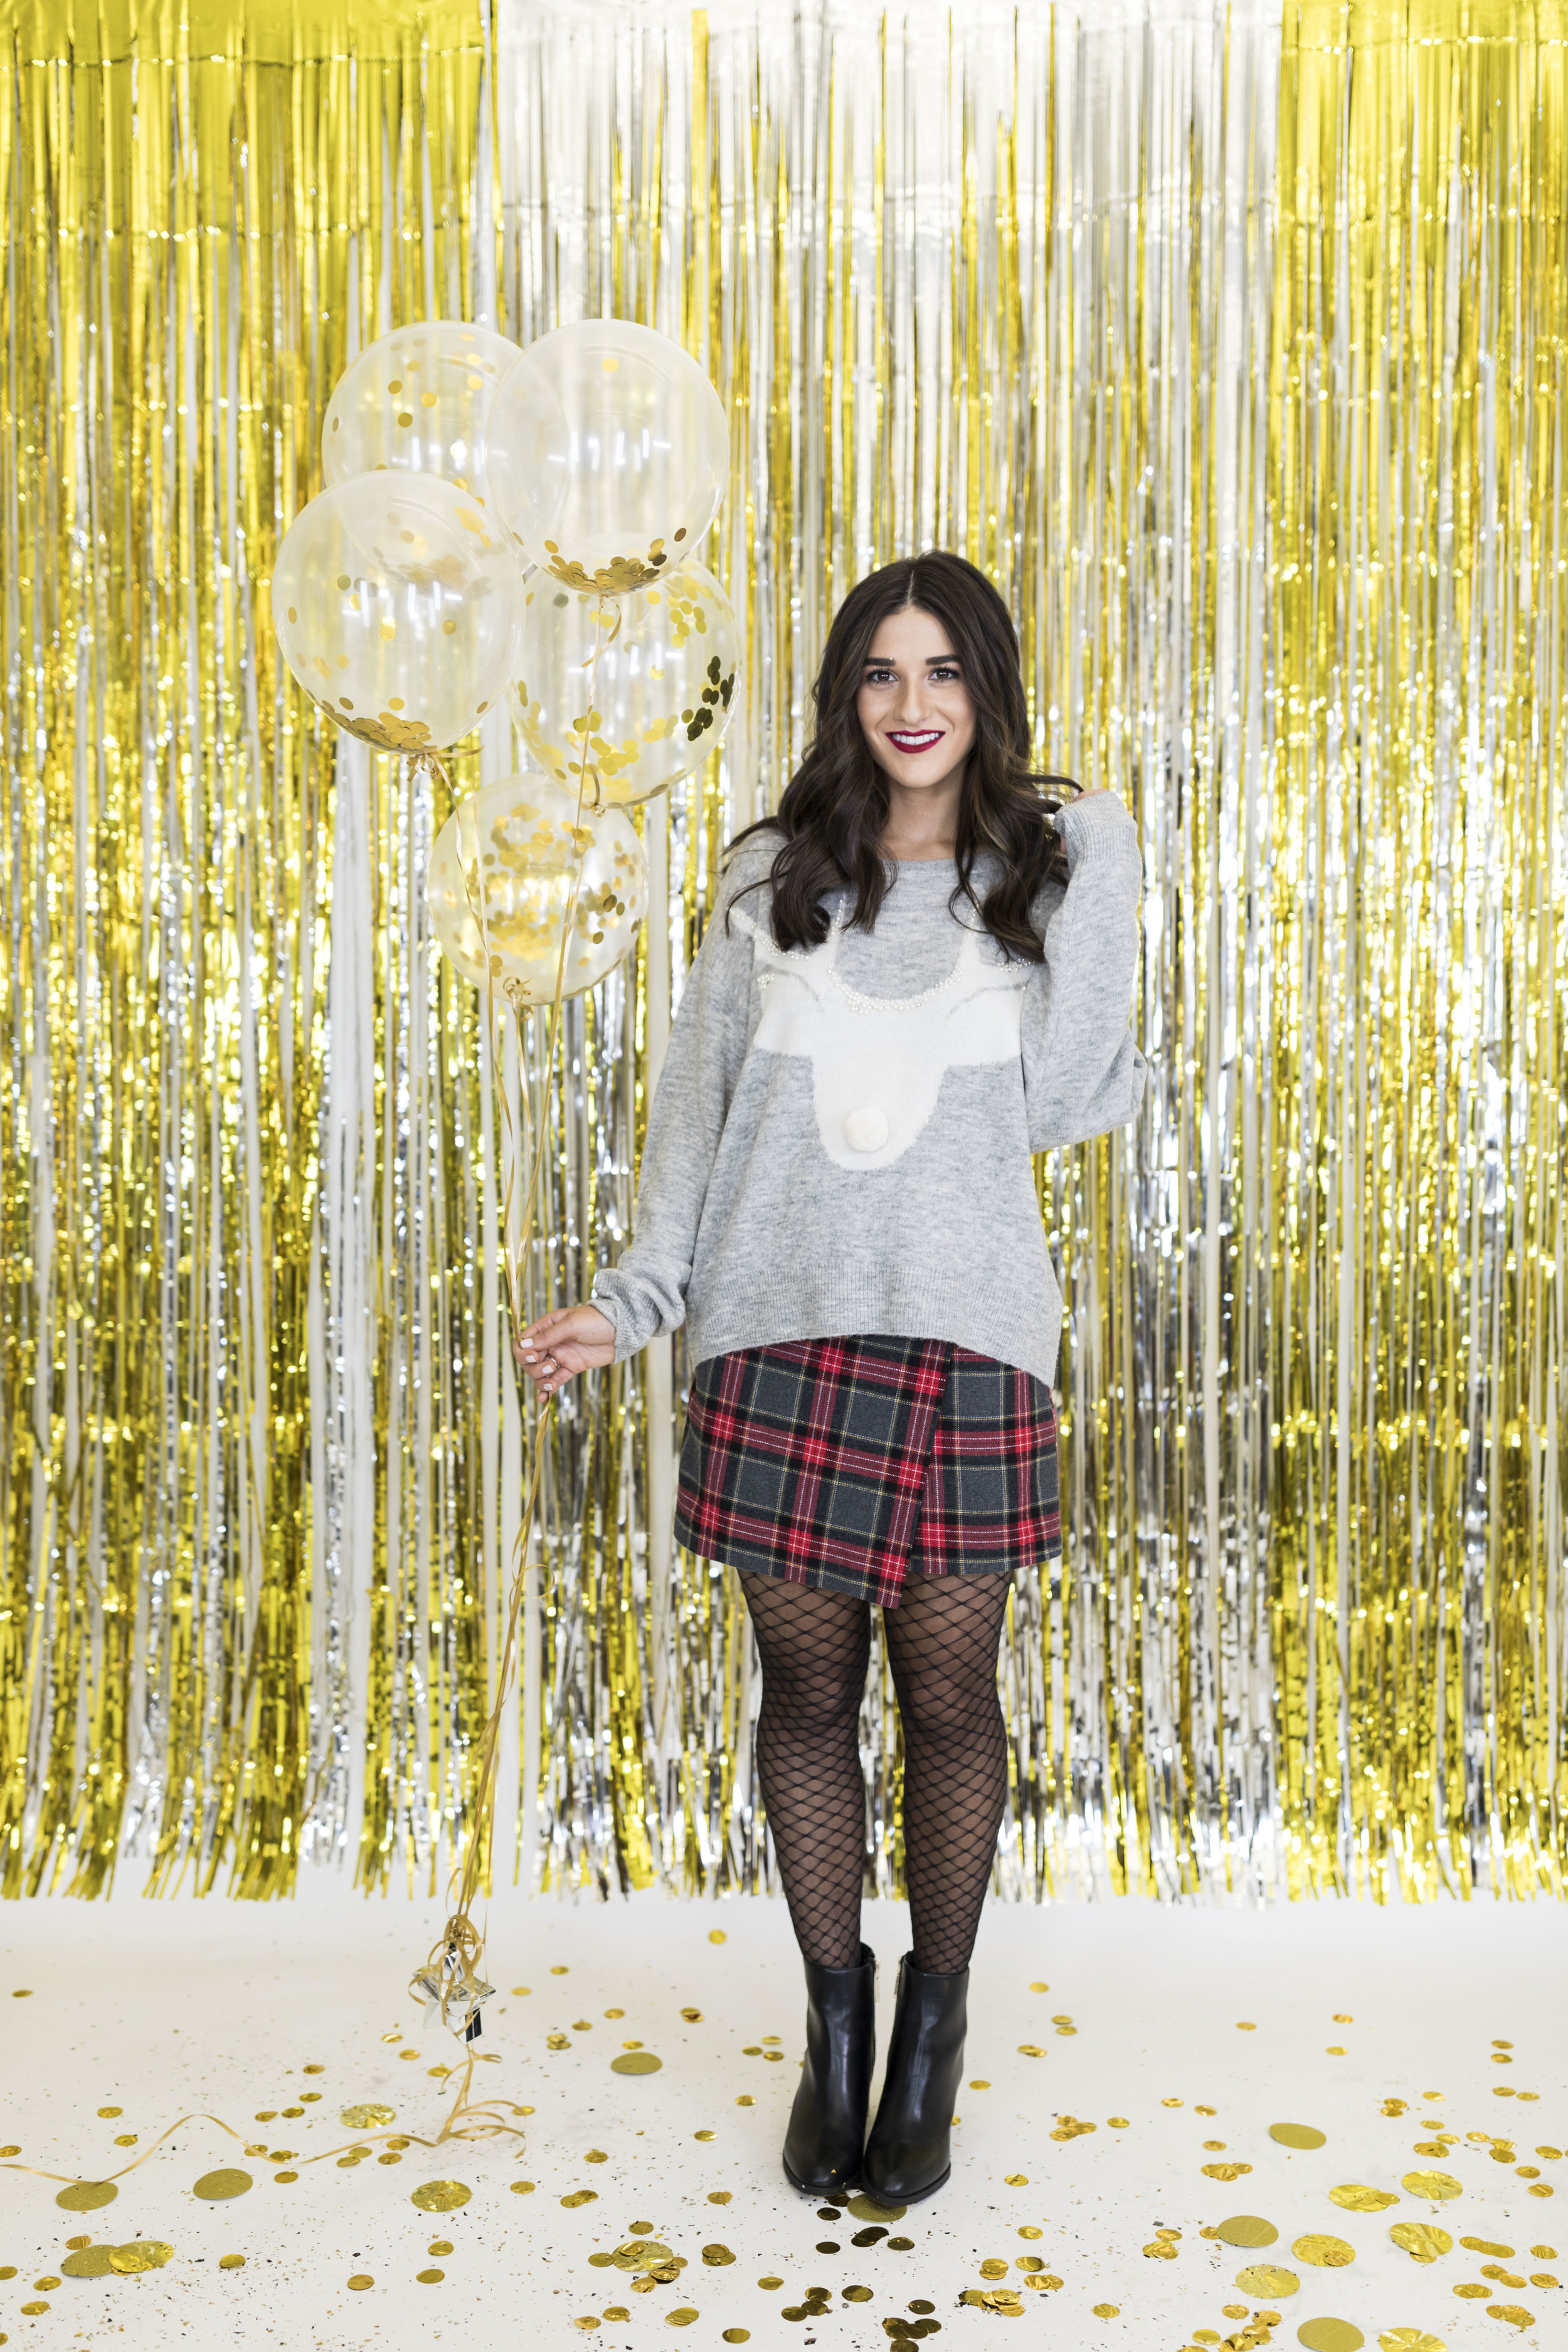 H&M Holiday Video Collab Esther Santer Fashion Blog NYC Street Style Blogger Outfit OOTD Trendy Confetti Streamers Balloons Presents Gift Wrap Shopping Wear Stylist Photoshoot Sweater Plaid Skirt DryBar Hairstyle Friends Girls Lace Accessories Jewelry.jpg